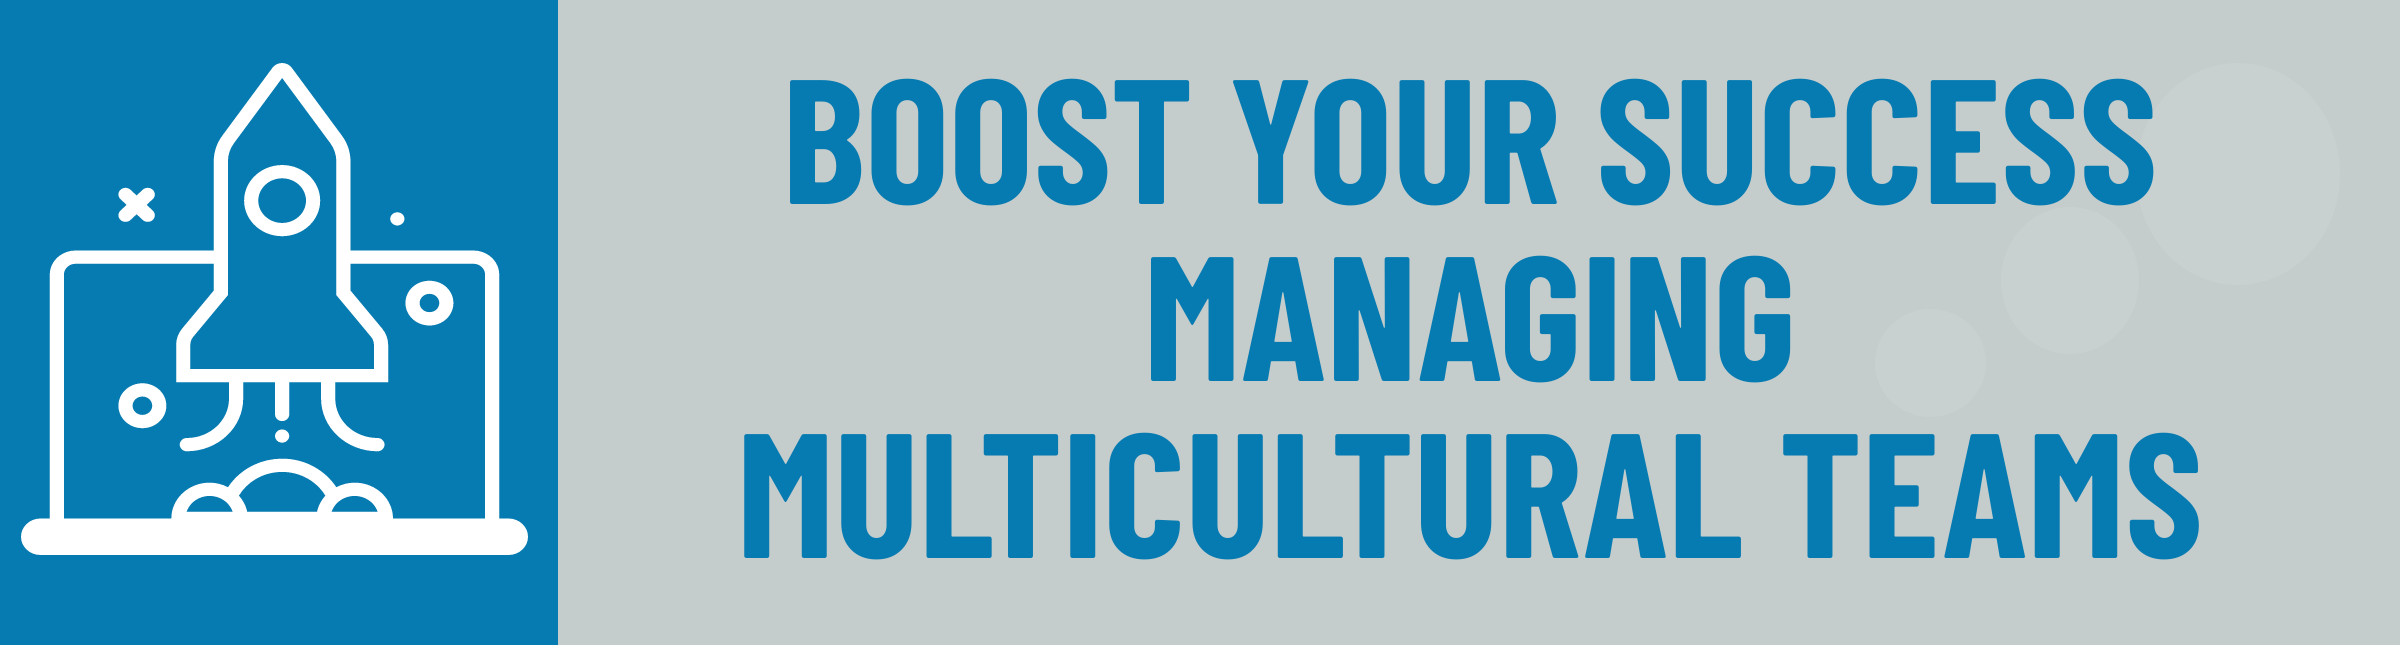 Banner: Boost Success Managing Multicultural Teams